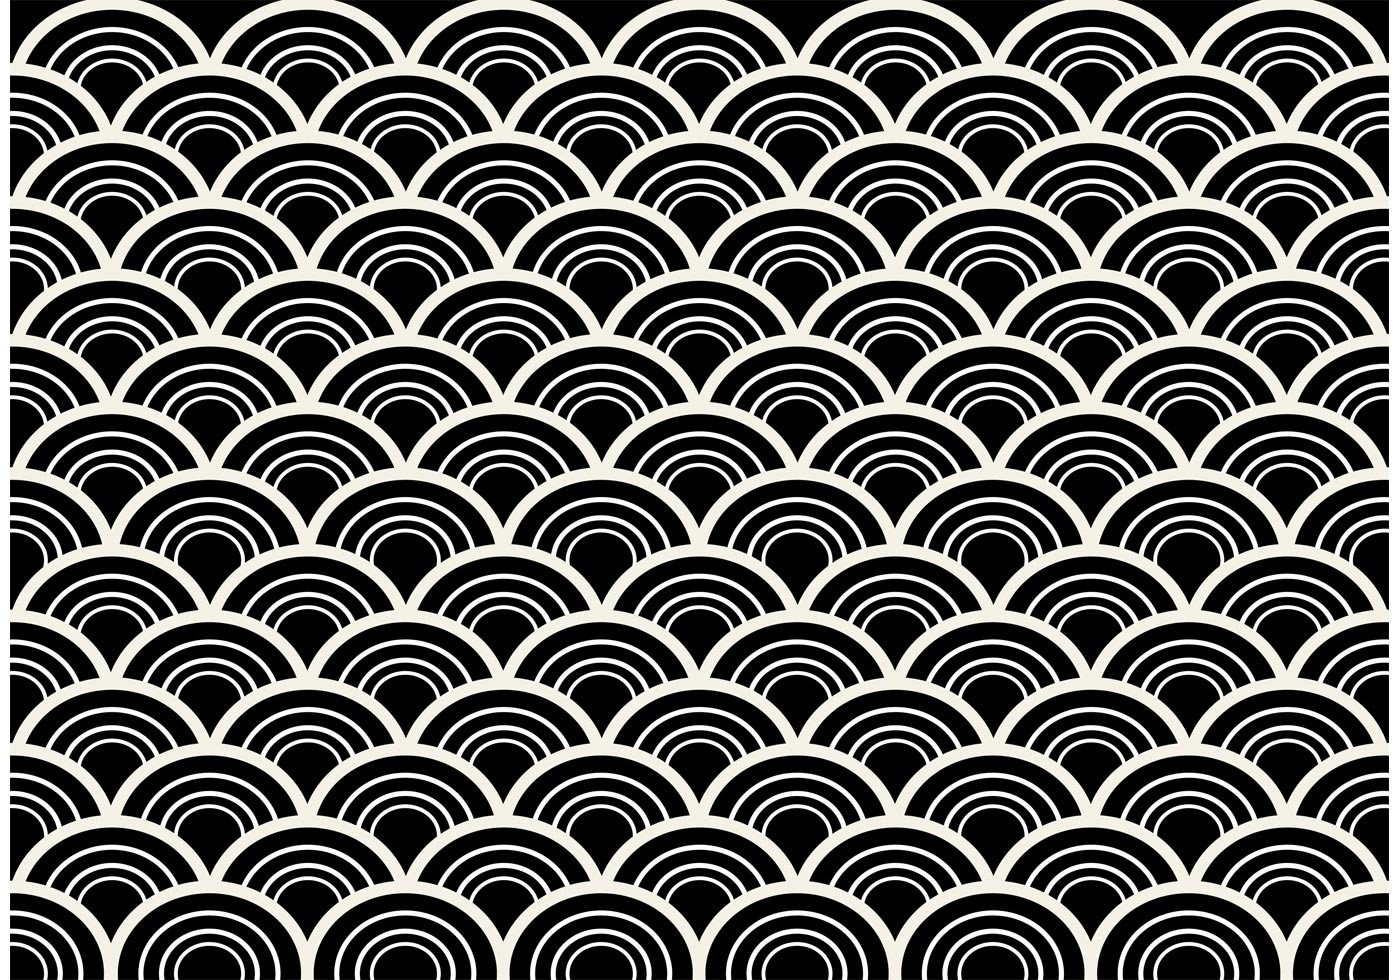 Patterns Black and White Black and White Seamless Abstract Pattern Vector